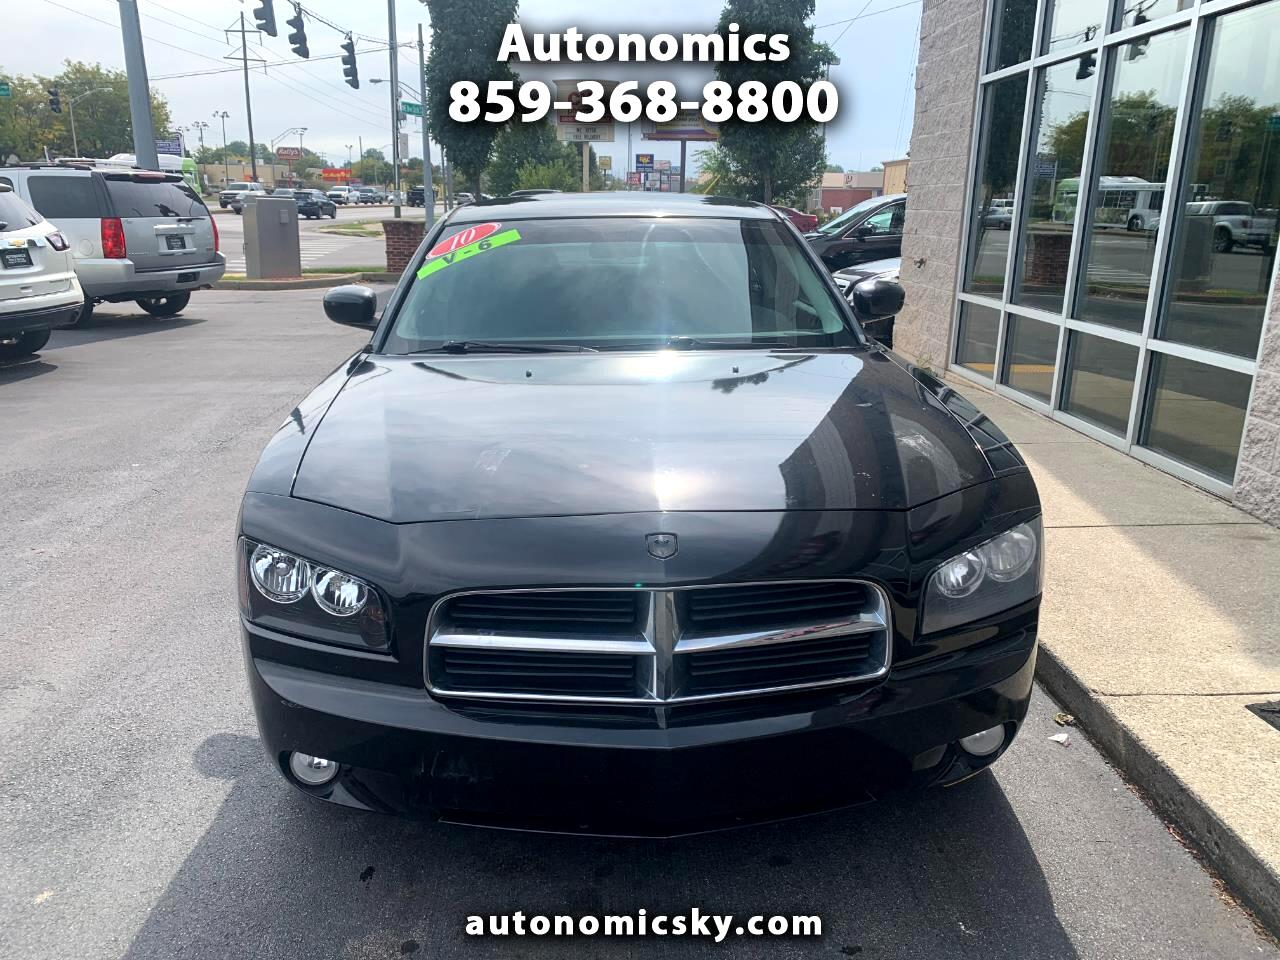 Dodge Charger 4dr Sdn SXT RWD 2010